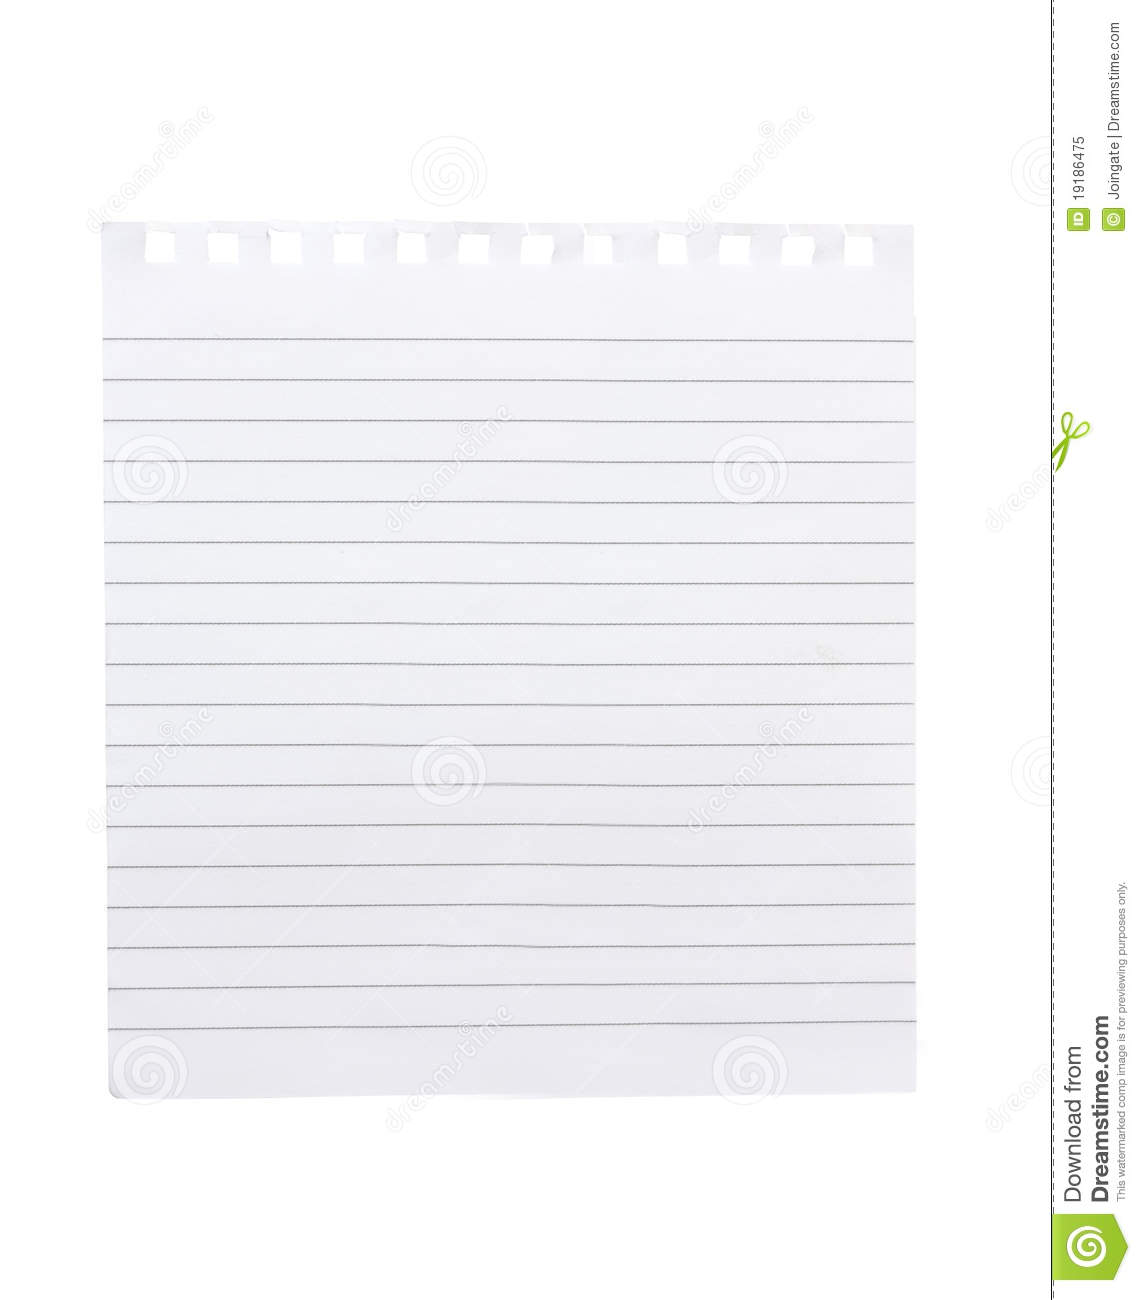 Torn Piece Of Notebook Paper Stock Image Image Of Notes Paper Torn Piece Notebook  Paper 19186475  Notebook Paper Background For Word